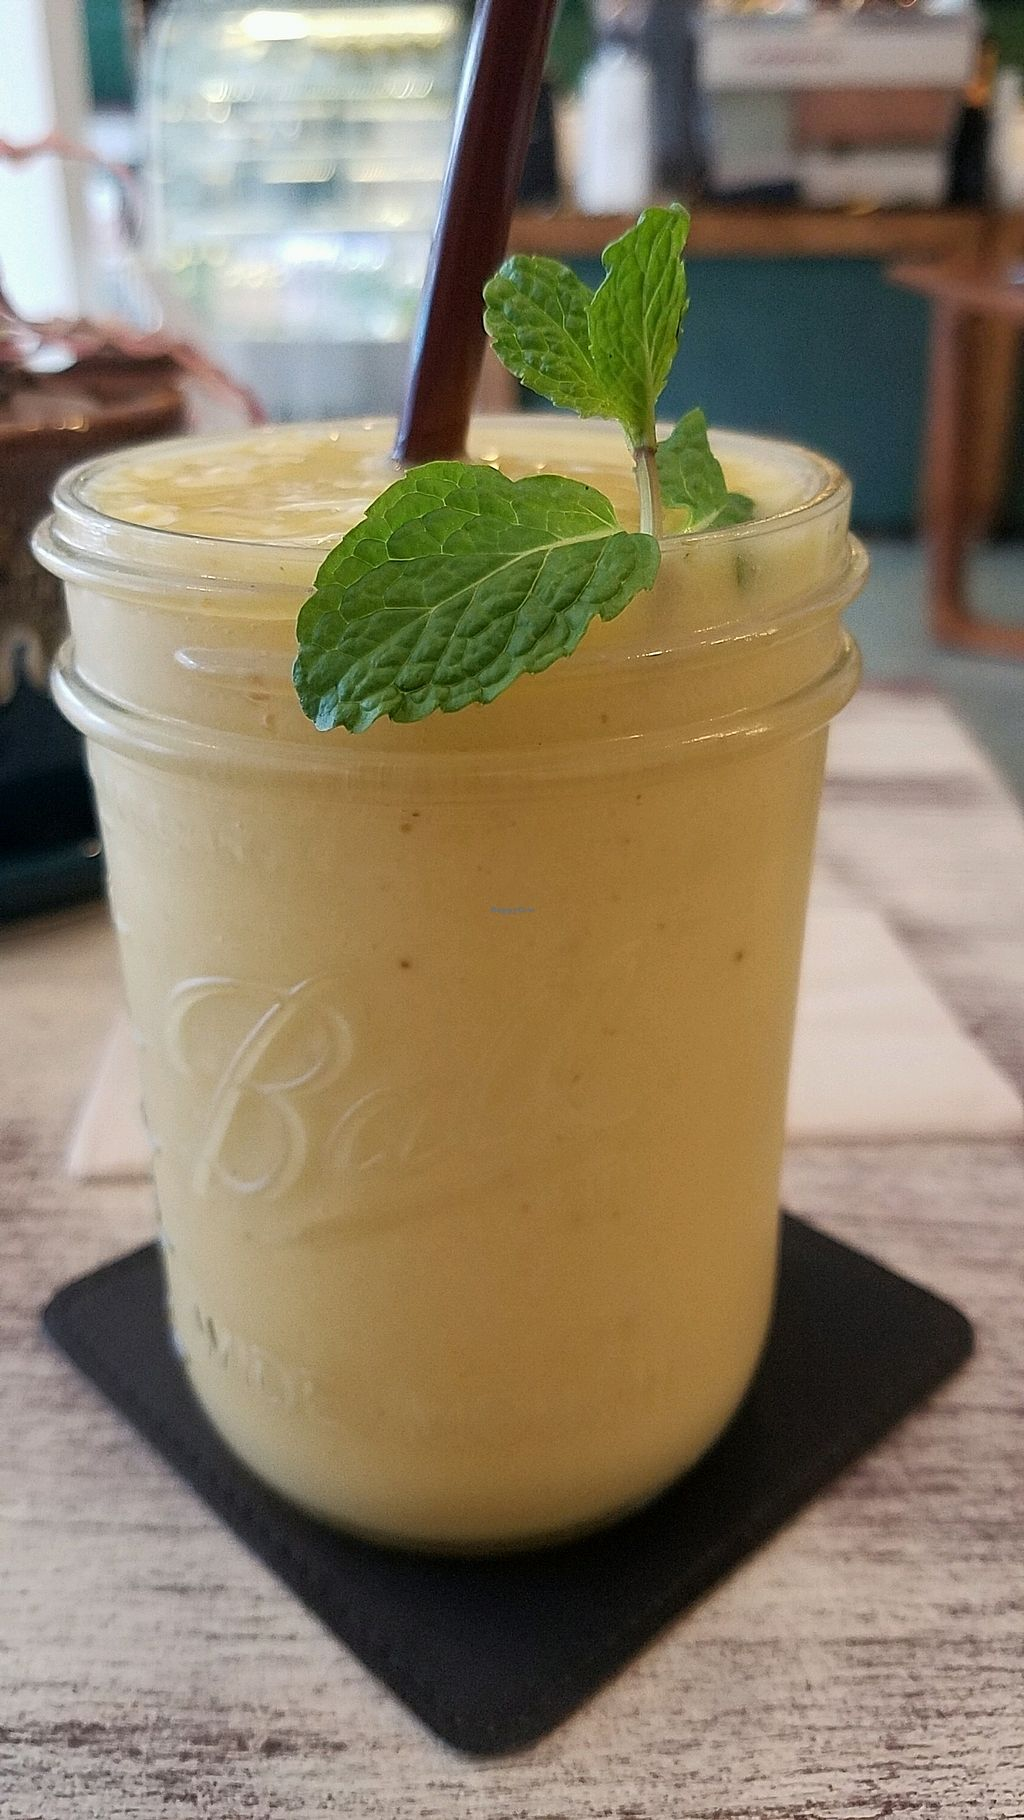 """Photo of Dots Coffee  by <a href=""""/members/profile/eric"""">eric</a> <br/>mango smoothie <br/> January 11, 2018  - <a href='/contact/abuse/image/100052/345250'>Report</a>"""